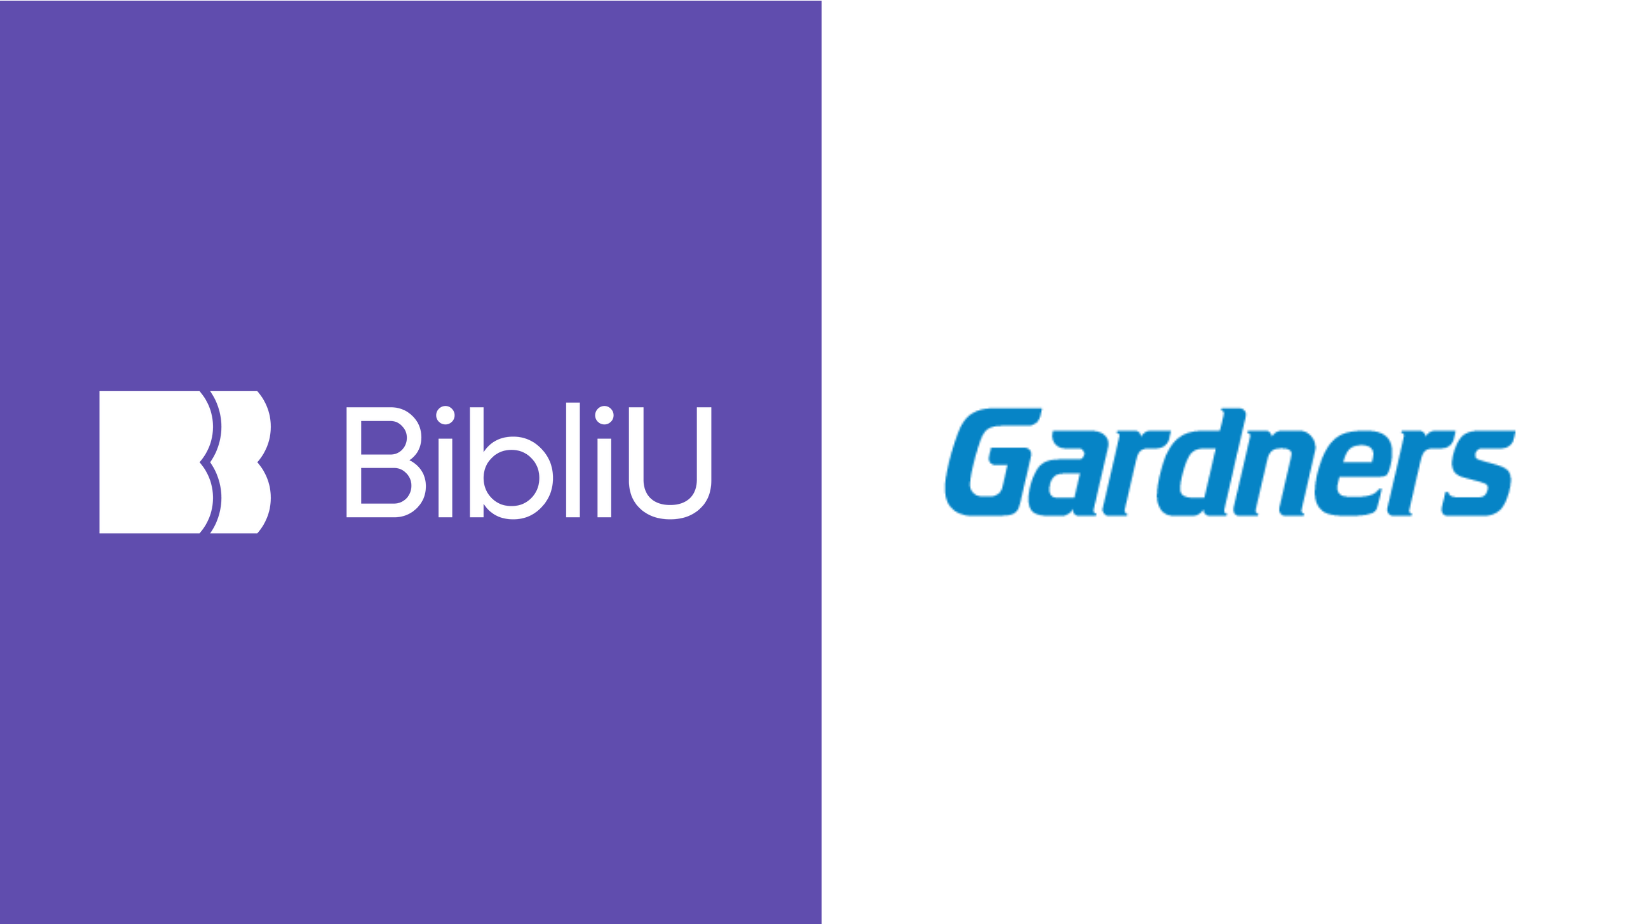 BibliU uses Gardners fulfilment service to enhance accessibility of print books for university students